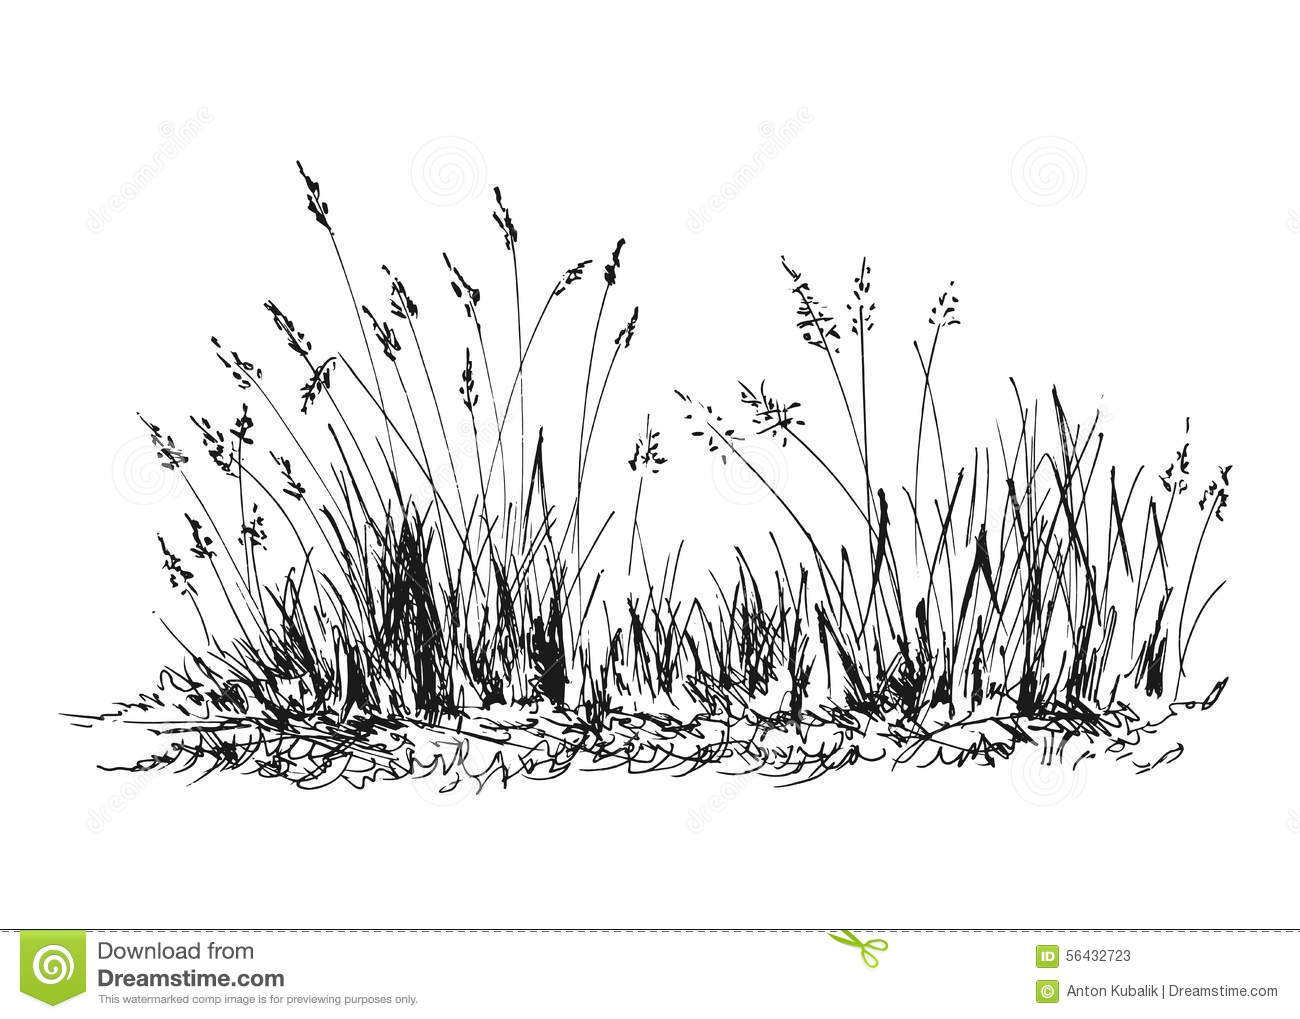 350 Free Graphics Vector Arrow Symbols And Shapes Vector 5210 as well Bleistift Grober Umriss Grosse 737351 together with Spy Man Taking Photo Vector Eps Svg also Stock Illustration Hand Sketch Grass Vector Illustration Image56432723 moreover Gandhiji Sketch. on pen clipart